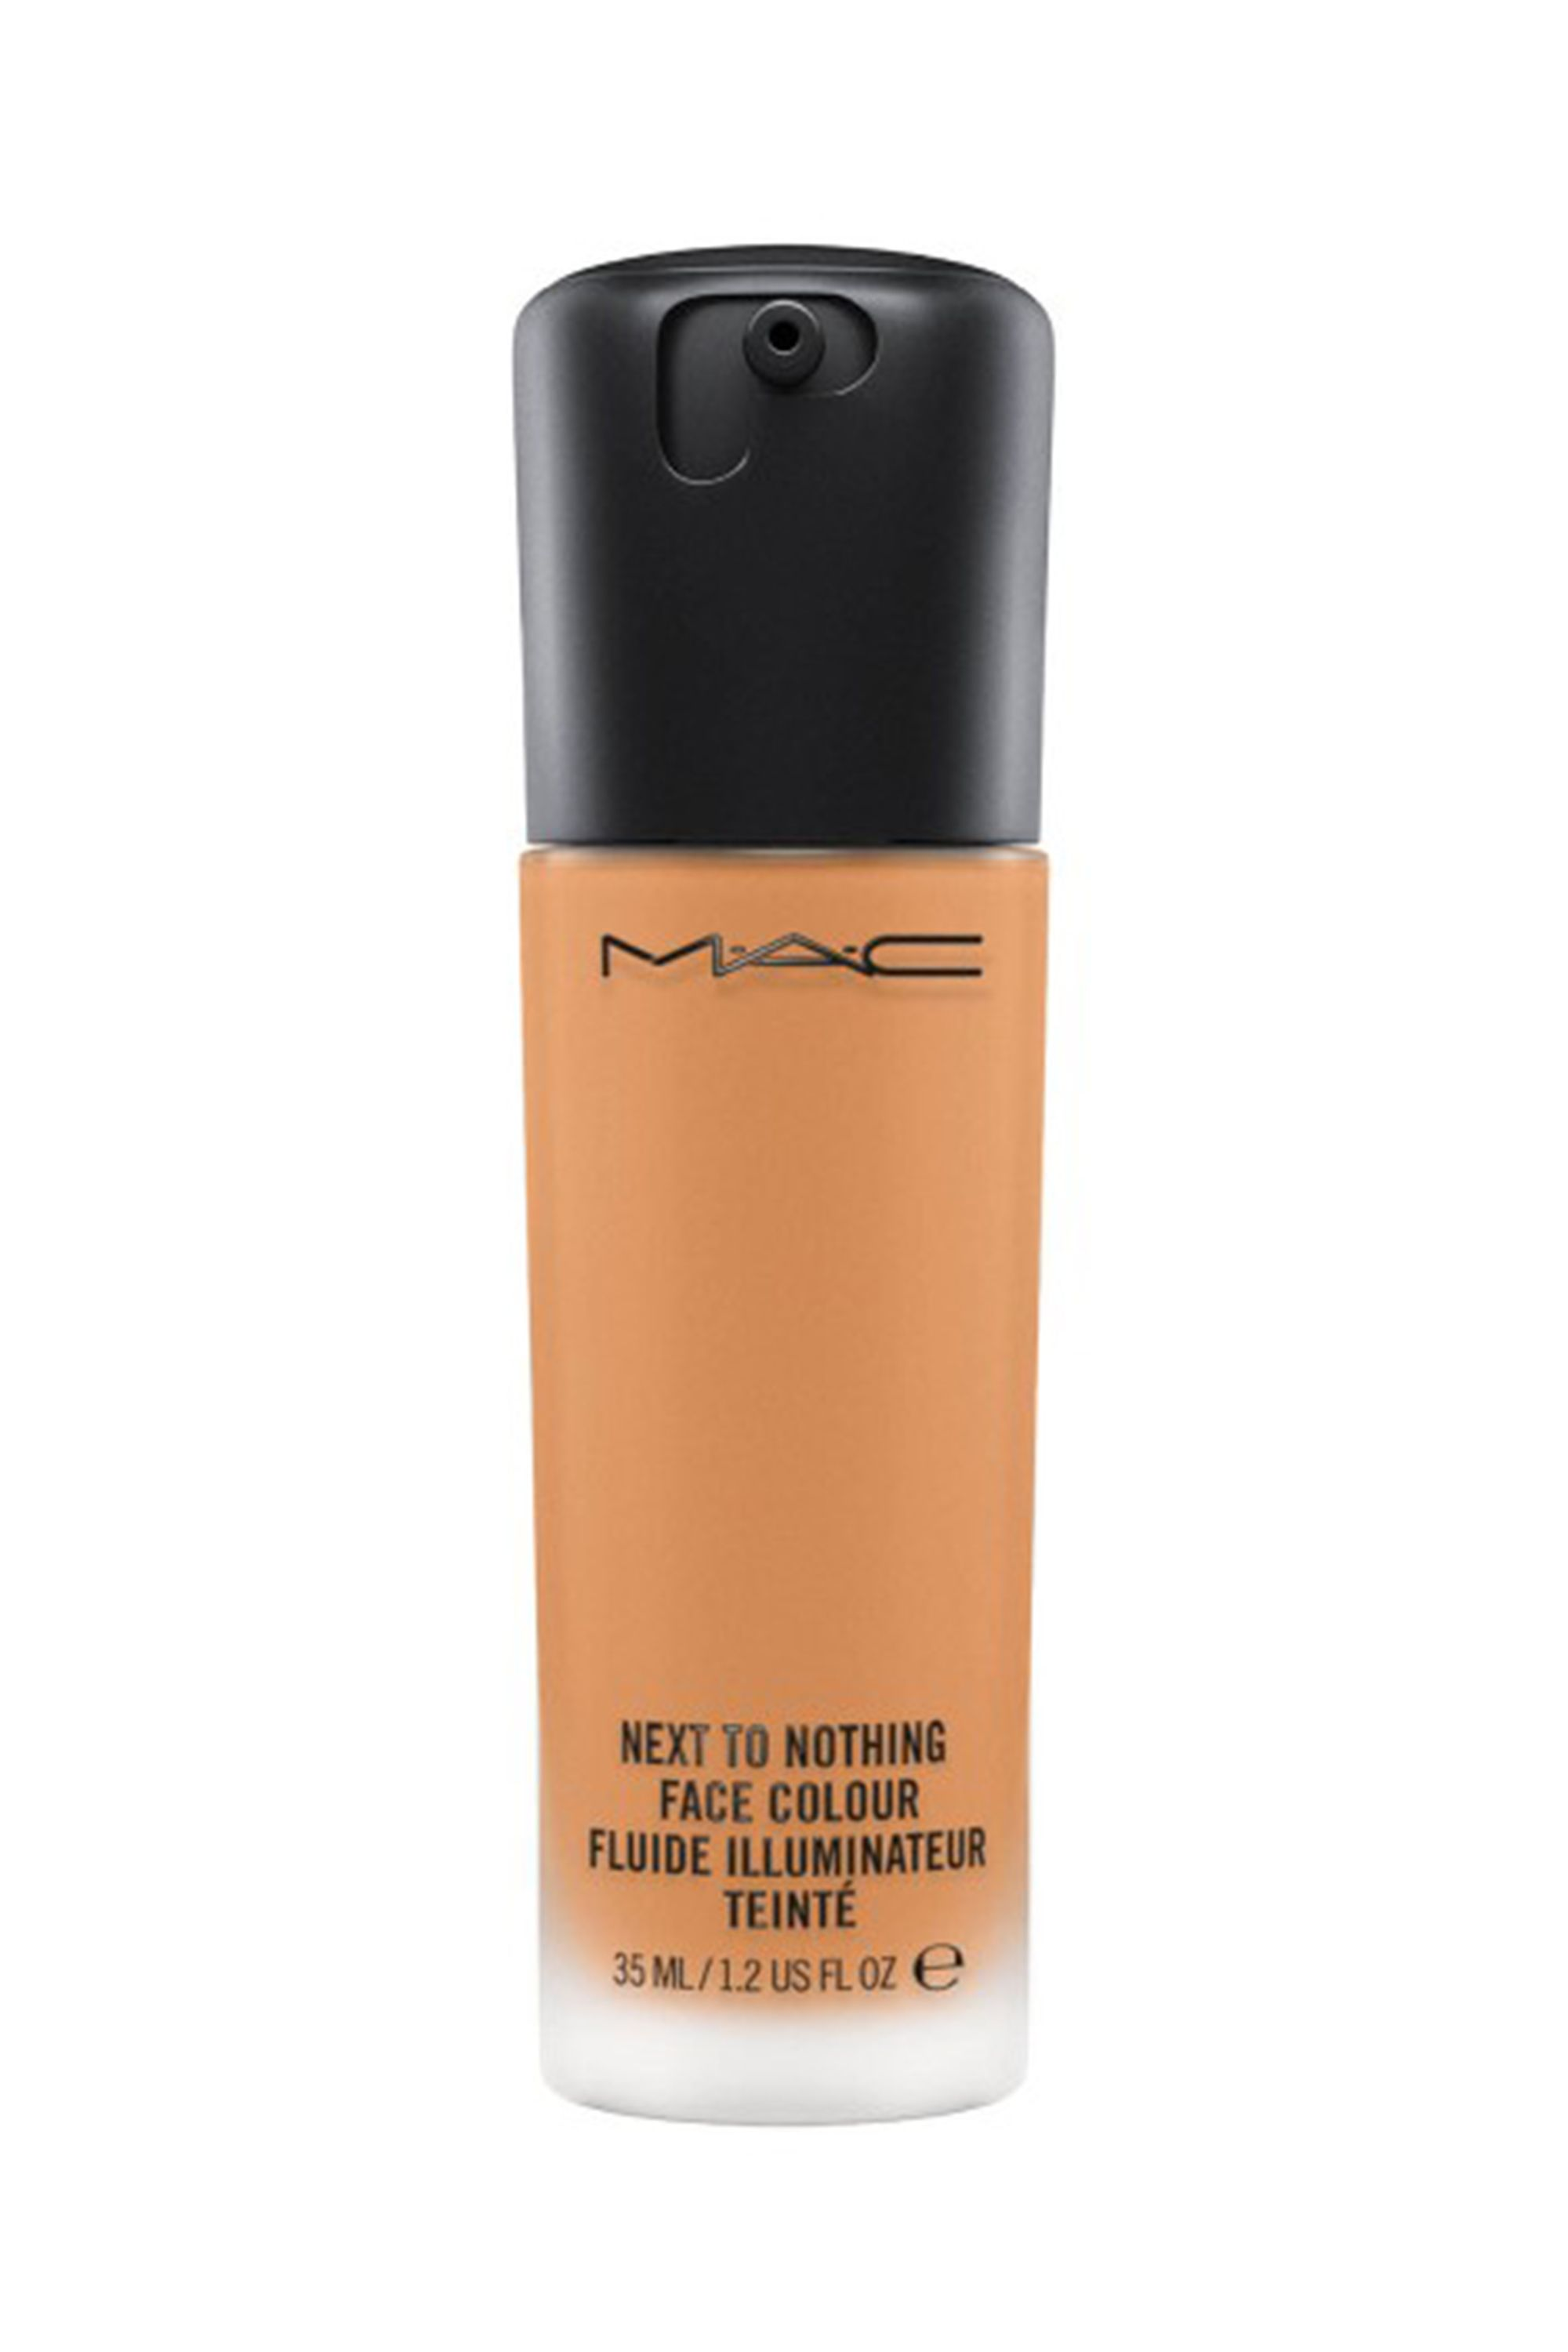 """<p>If you don't have anything to hide, then smooth on this barely-there formula that contains opalescent microspheres to rev up radiance in a flash. </p><p><em data-redactor-tag=""""em"""" data-verified=""""redactor"""">$31, </em><a href=""""http://www.maccosmetics.com/collections-next-to-nothing"""" data-tracking-id=""""recirc-text-link""""><em data-redactor-tag=""""em"""" data-verified=""""redactor"""">maccosmetics.com</em></a><a href=""""http://www.maccosmetics.com/collections-next-to-nothing""""></a></p>"""